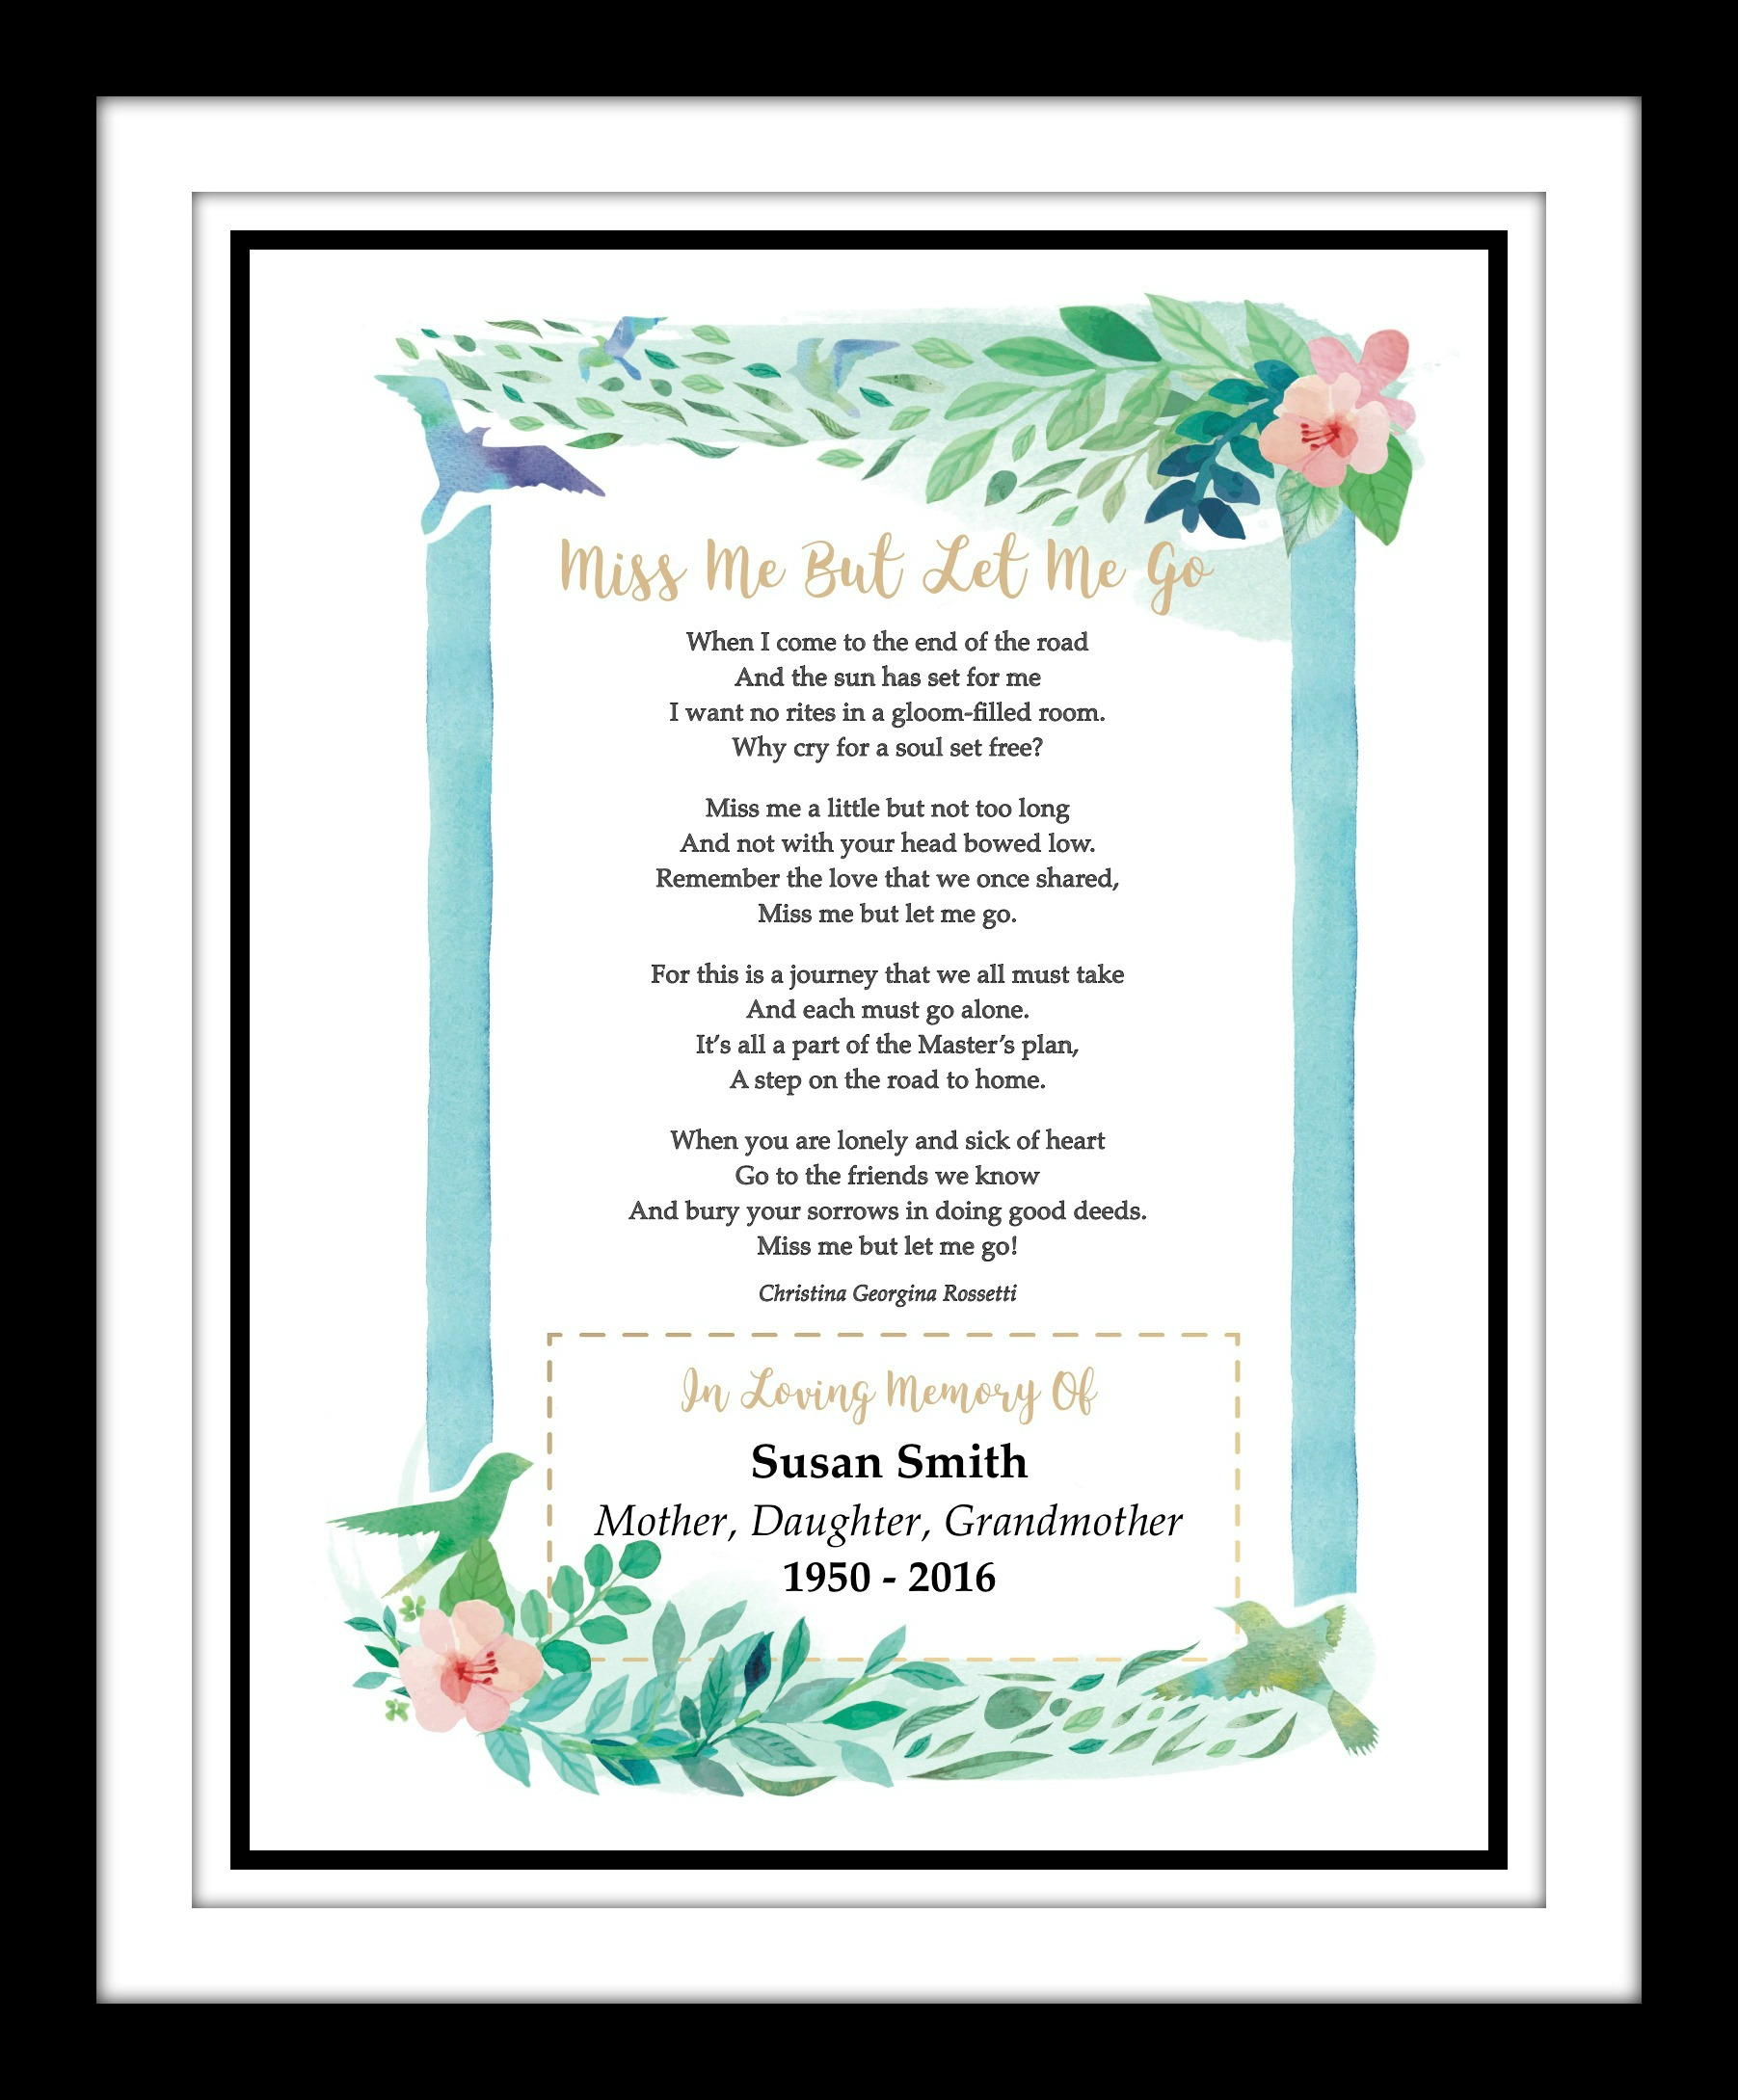 Struggling to plan a funeral memorial service or Celebration of Life – Funeral Checklist Template